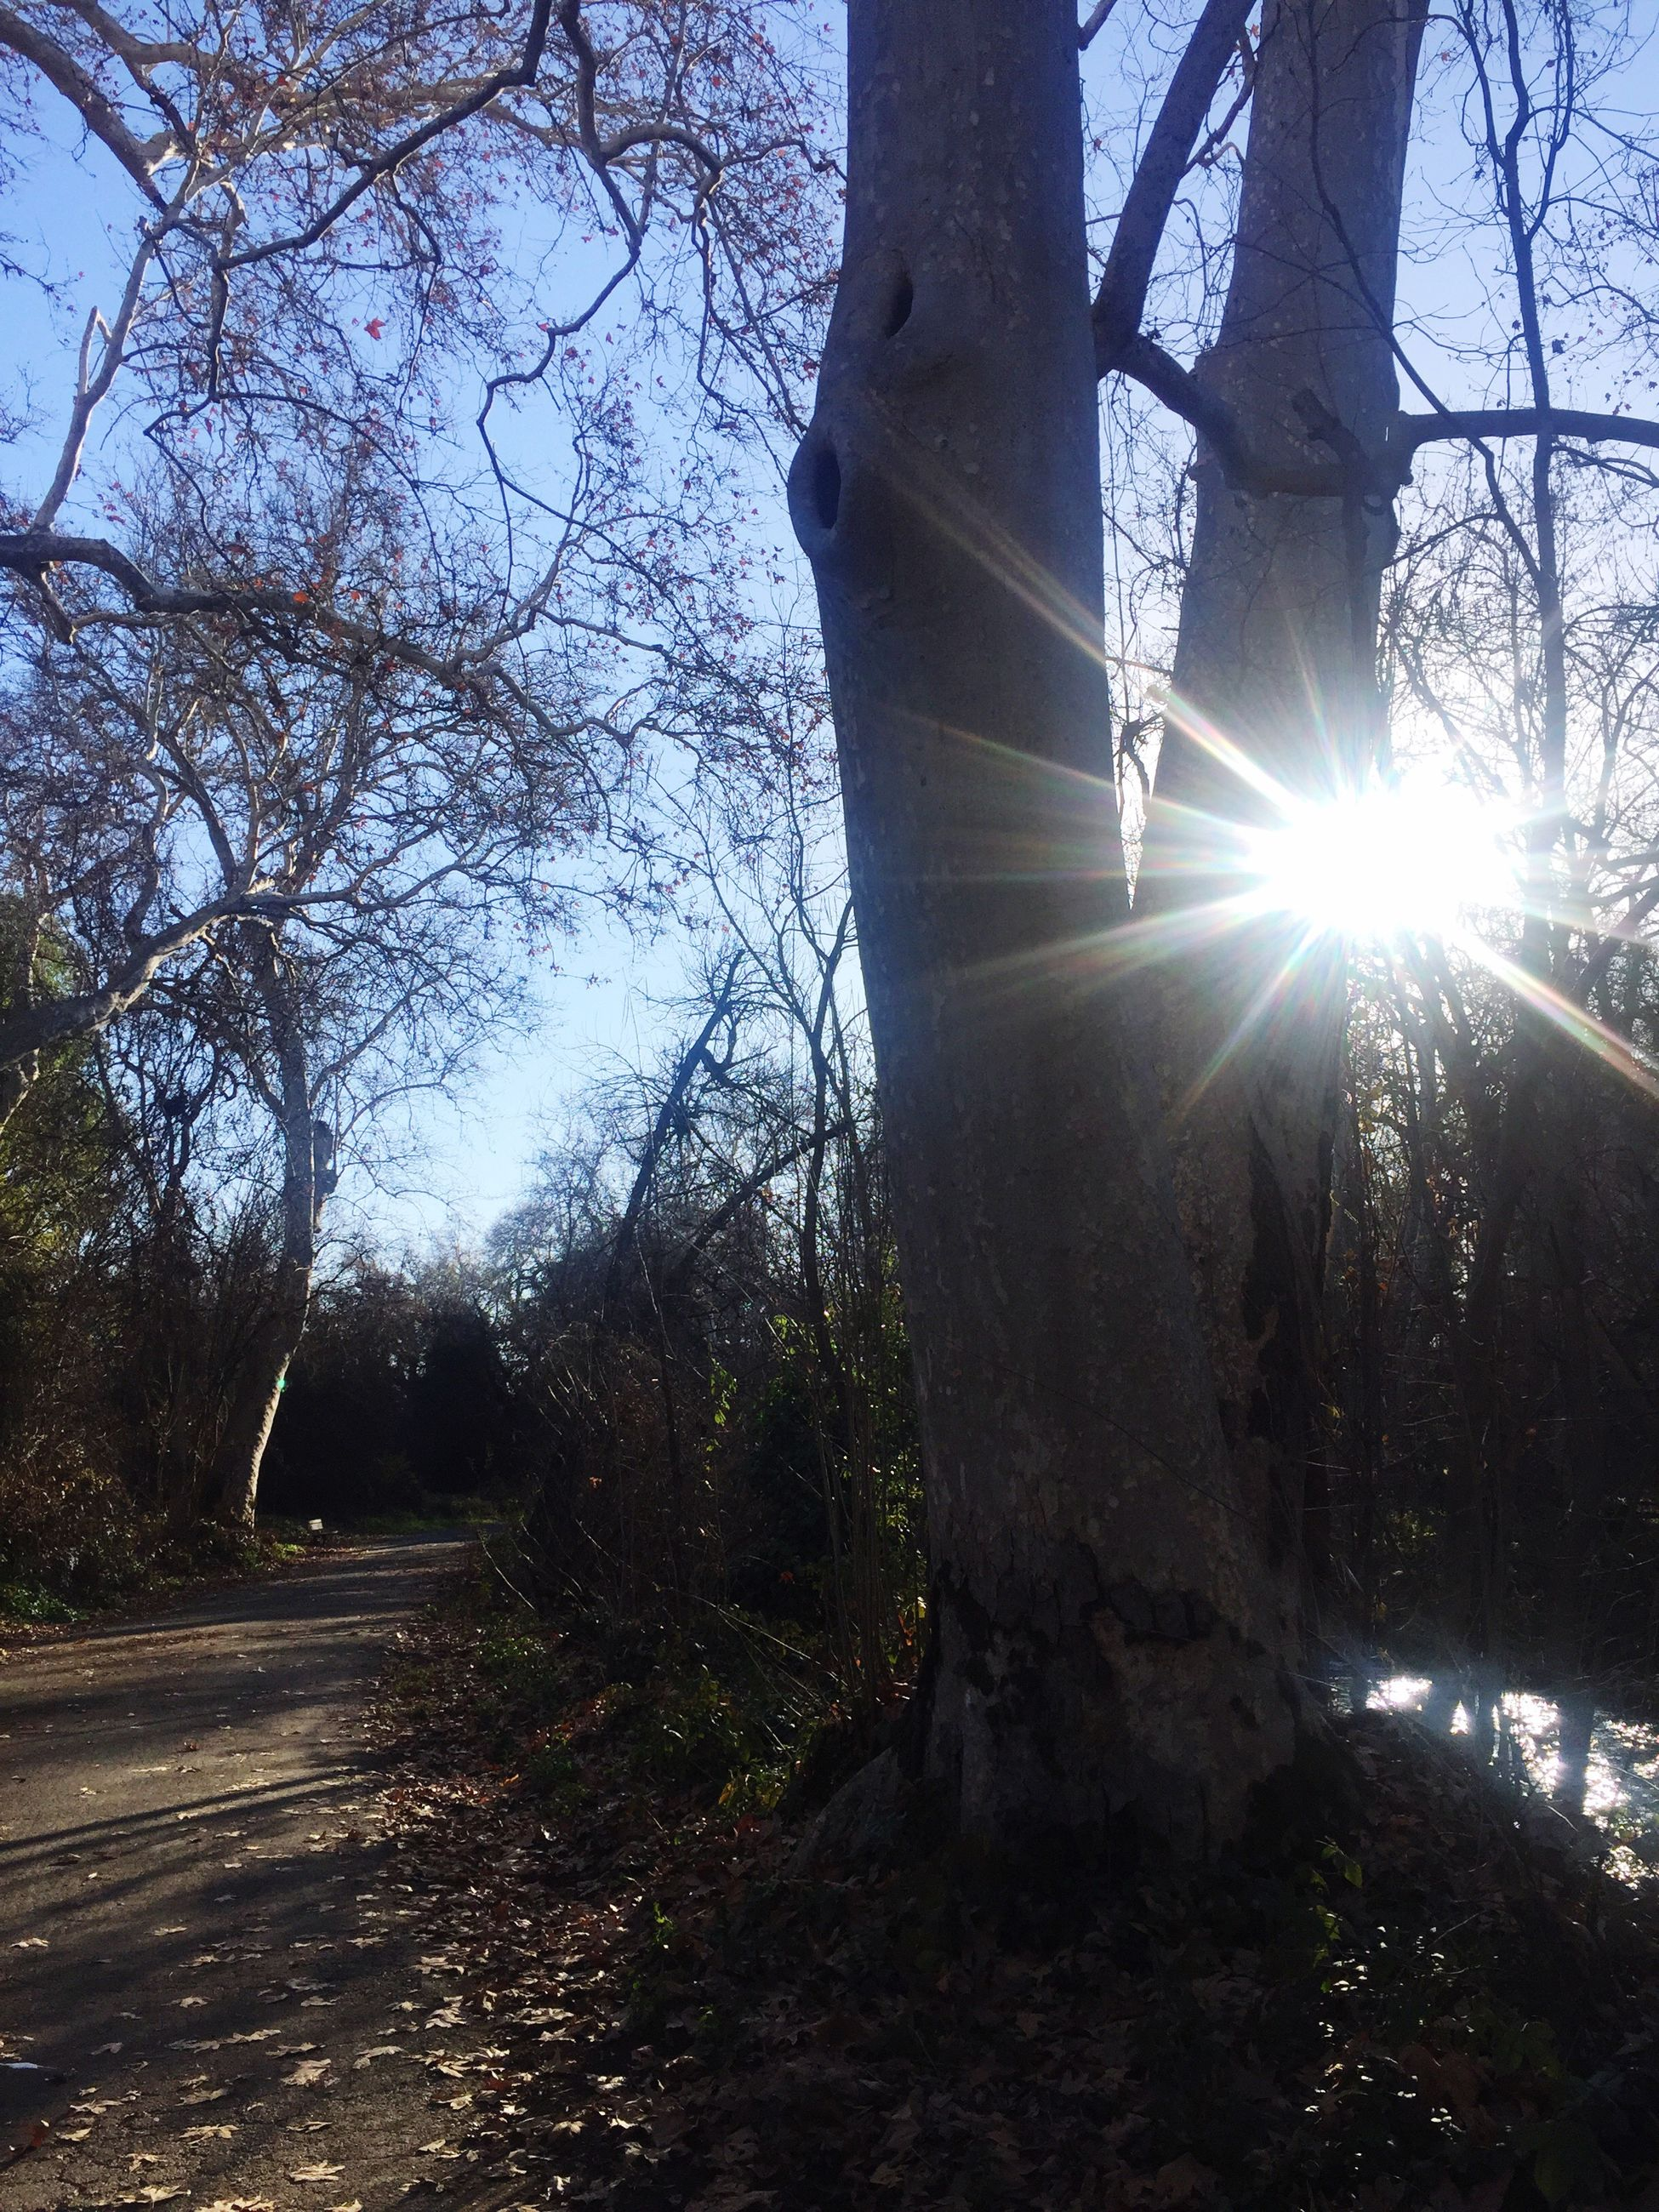 tree, sunbeam, sun, lens flare, sunlight, tree trunk, branch, nature, outdoors, forest, tranquility, no people, day, bare tree, growth, beauty in nature, sky